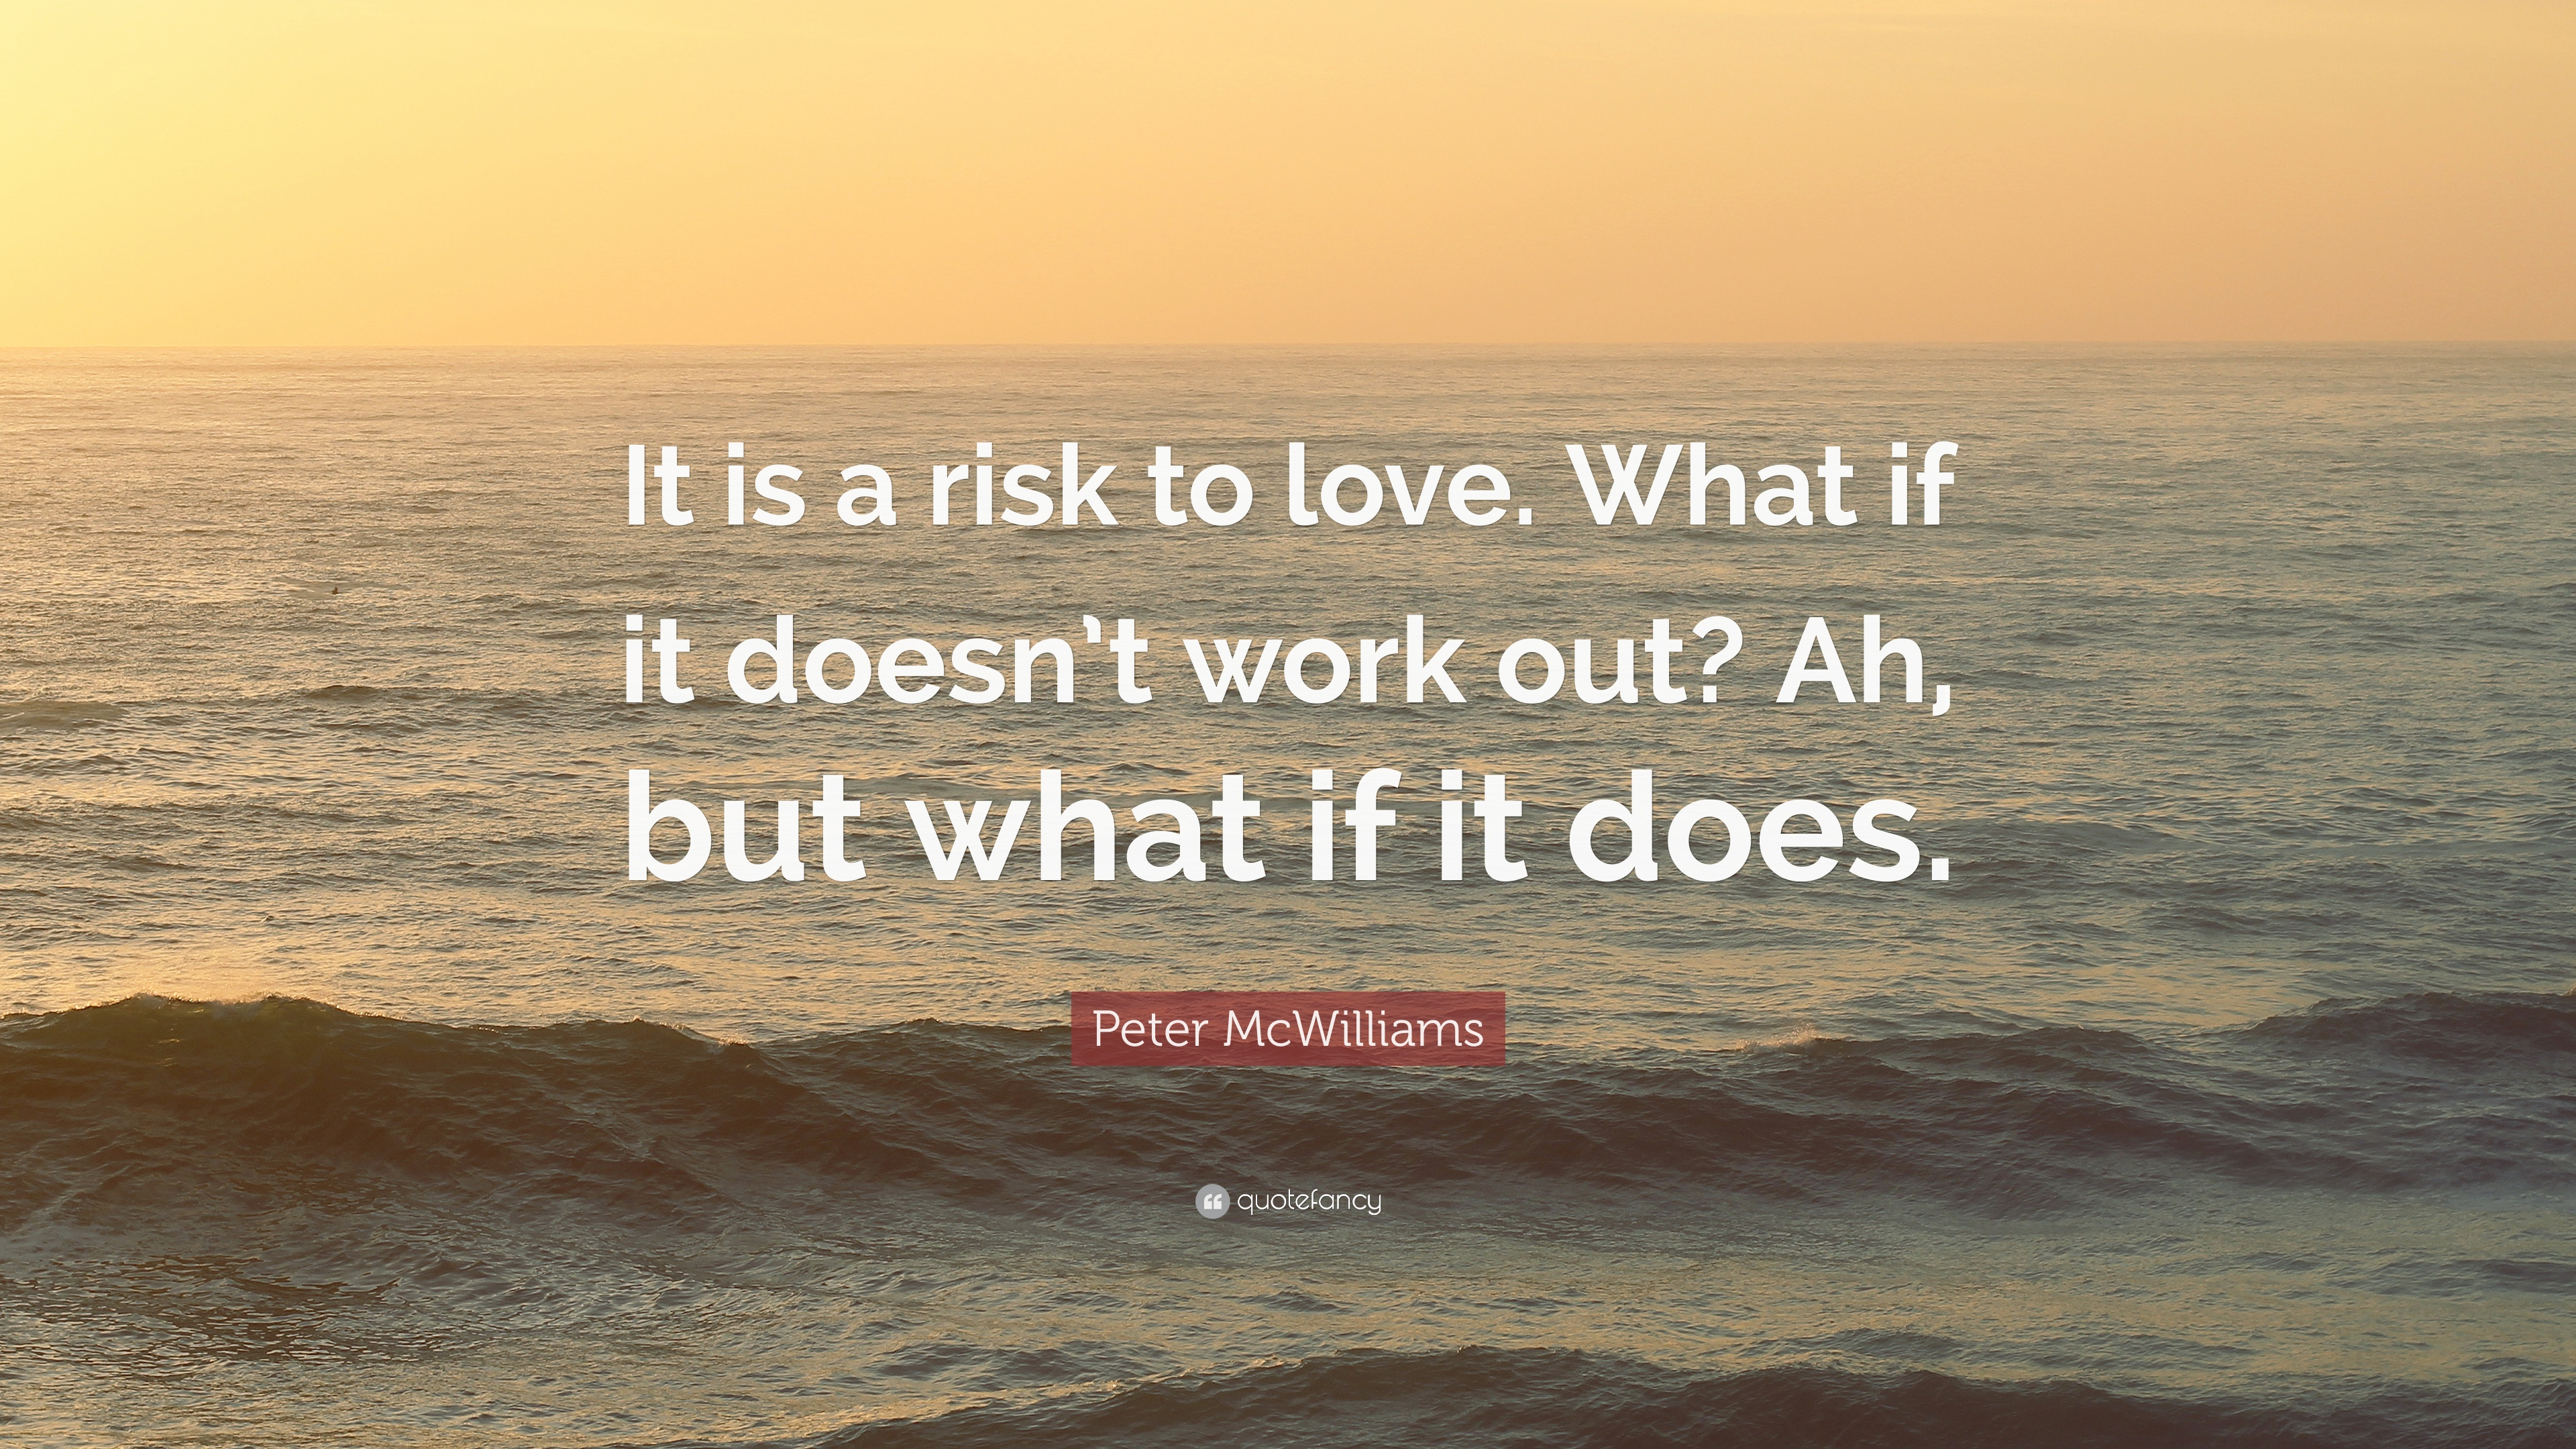 peter mcwilliams quote it is a risk to love what if it doesn t